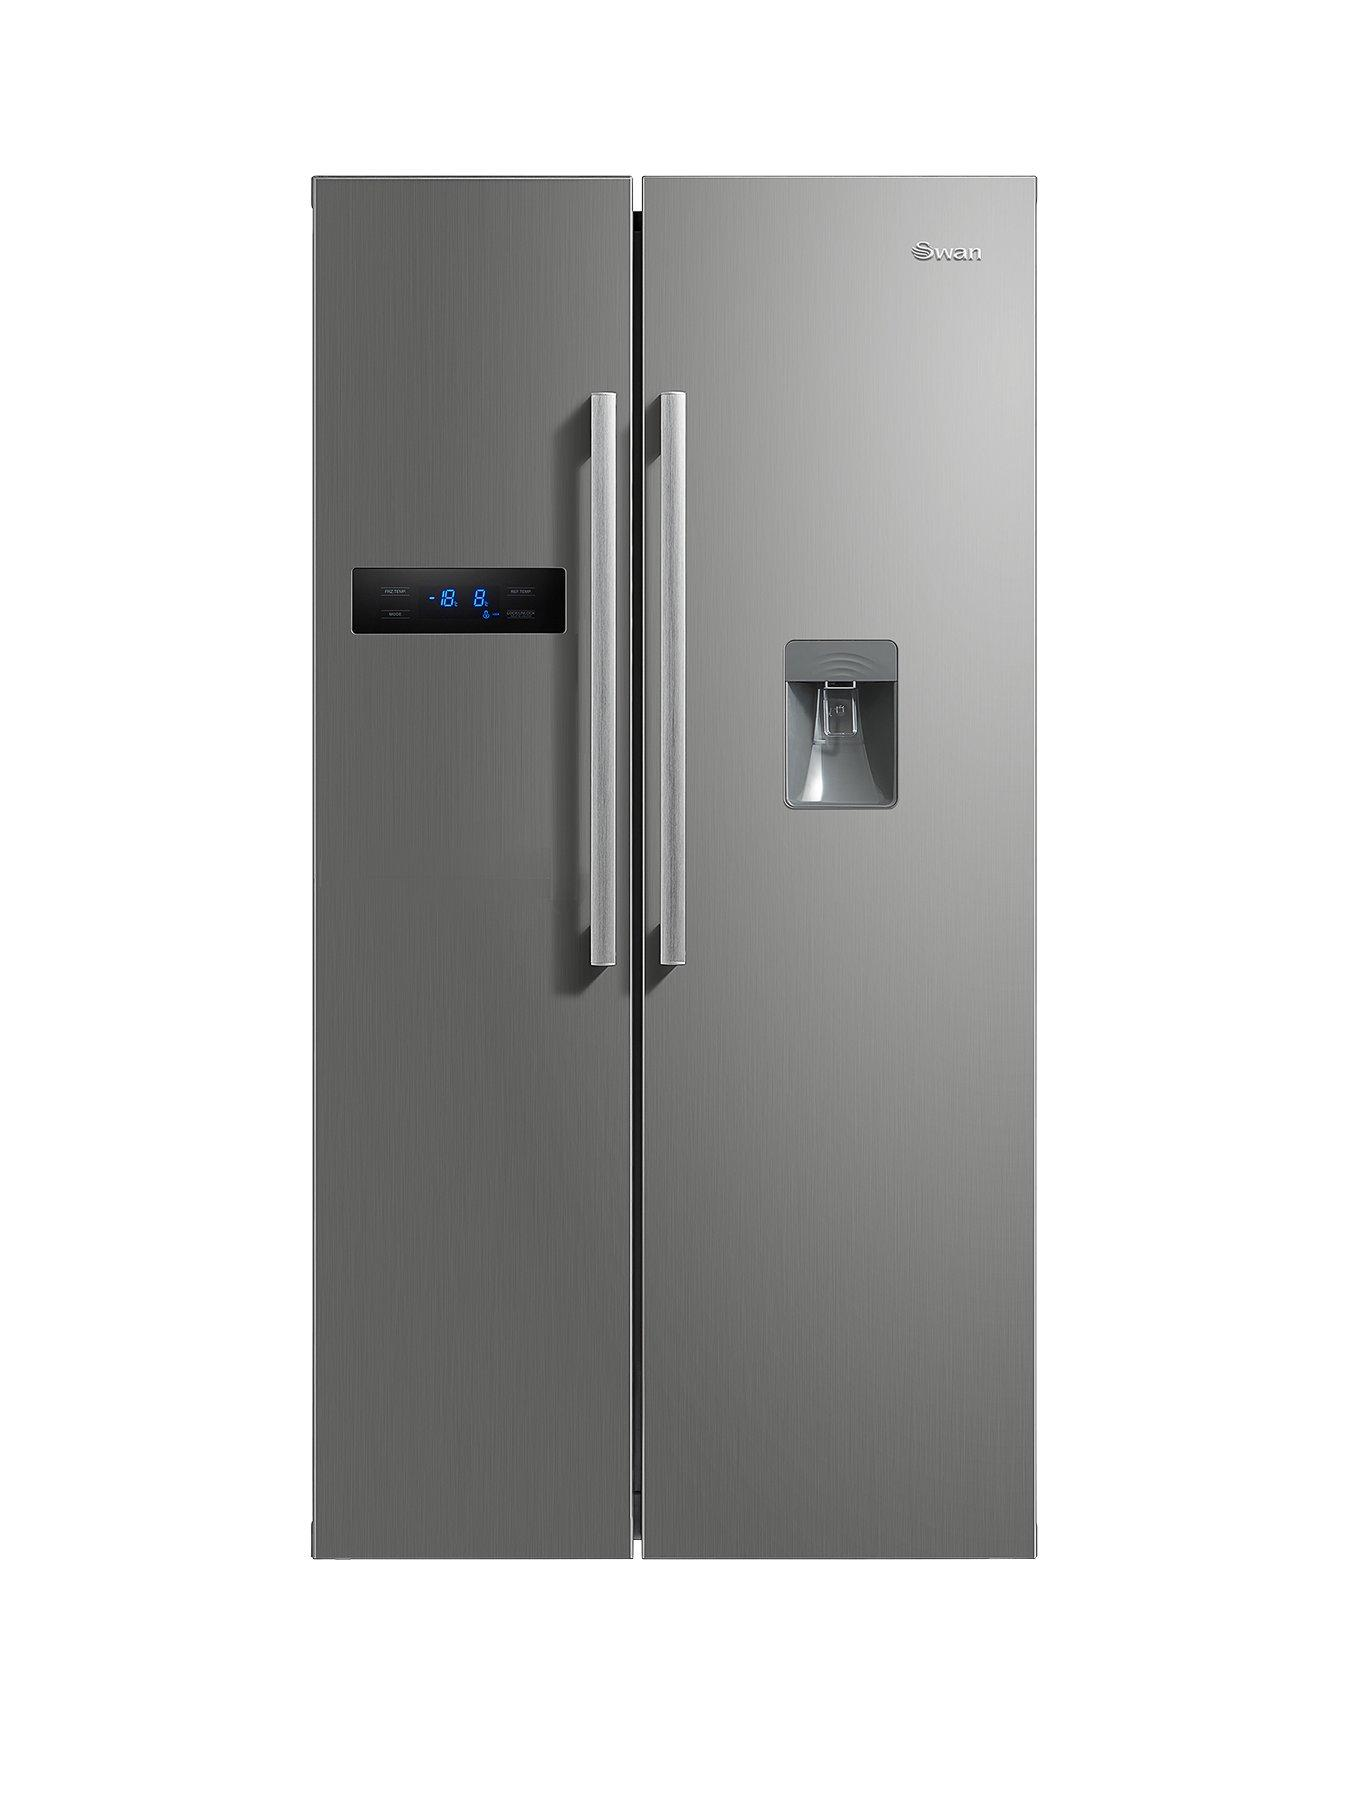 swan sr70110s 90cm double door fridge freezer with water dispenser silver